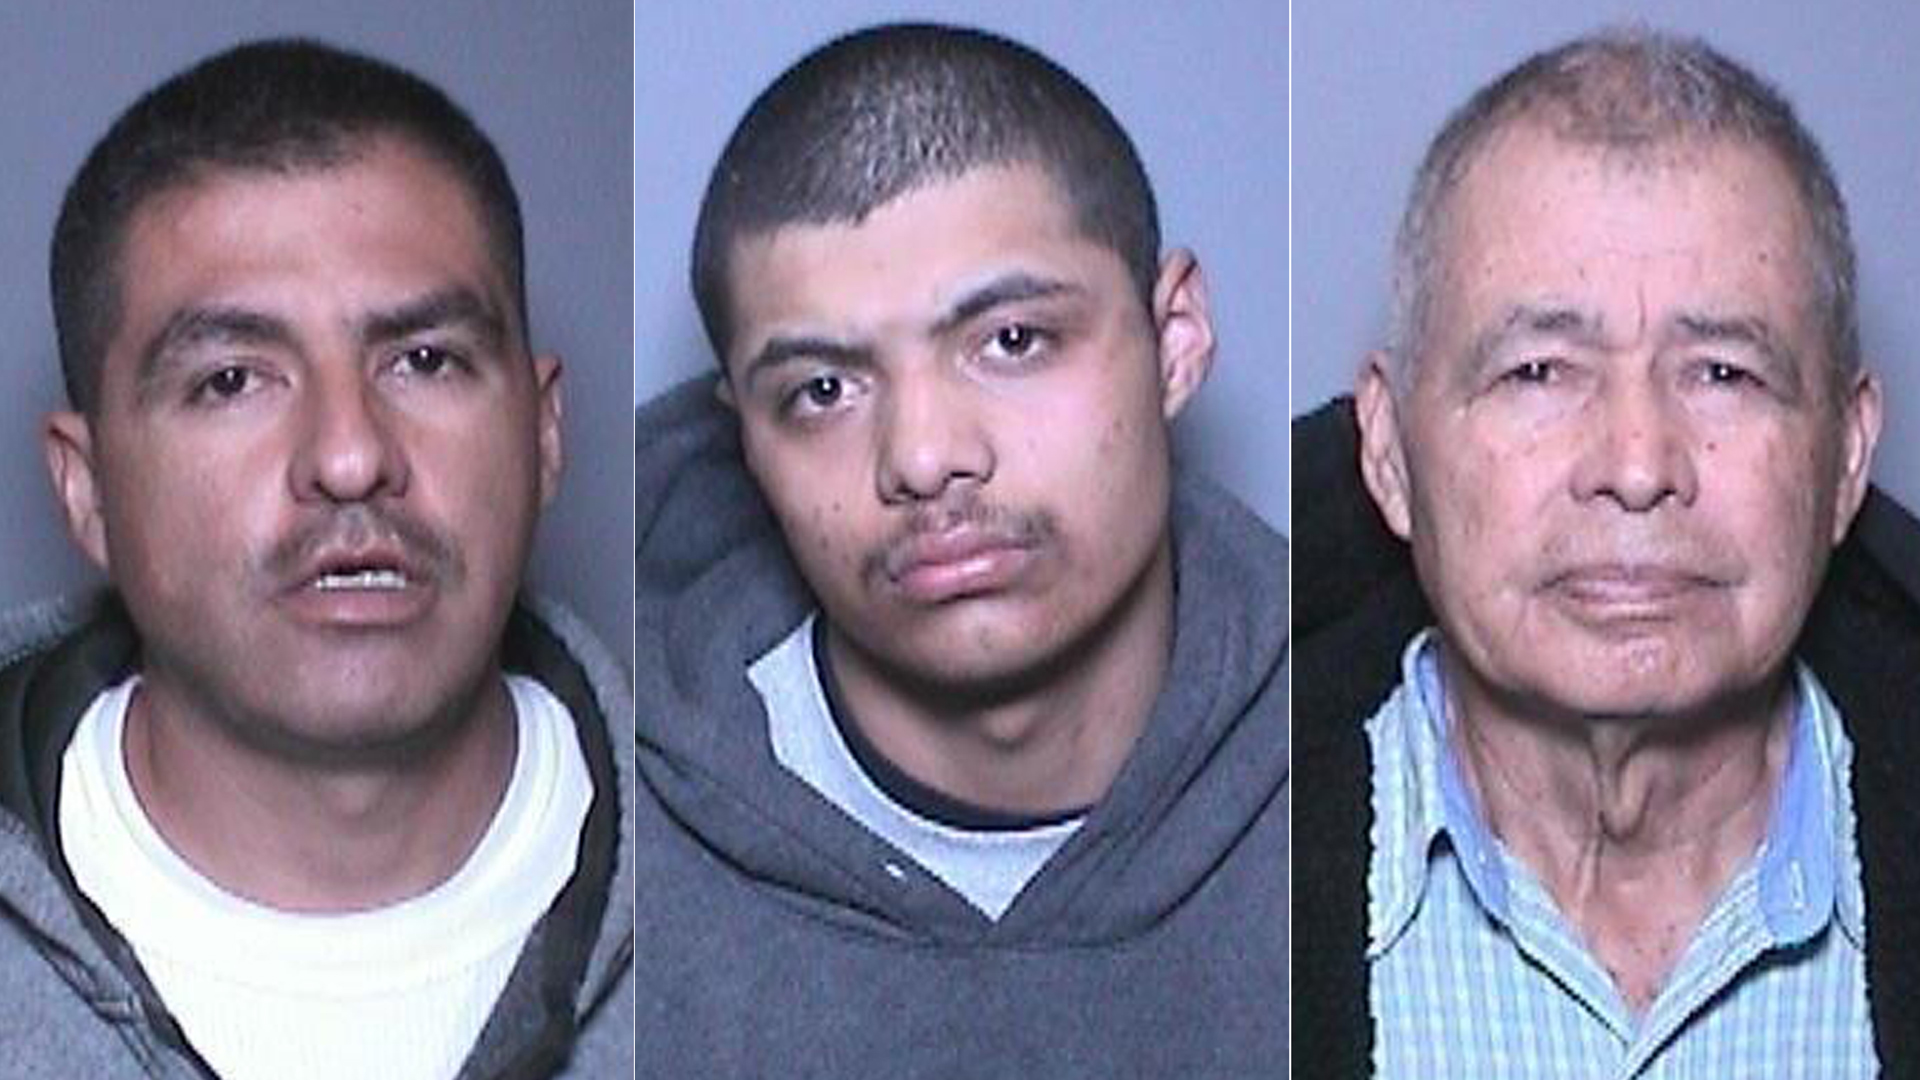 From left to right: Carlos Castaneda, 35; Tommy Antonio Navarette, 19; andSalvador Duran Castaneda, 72, are seen in undated booking photos. (Credit: Orange County District Attorney's Office)